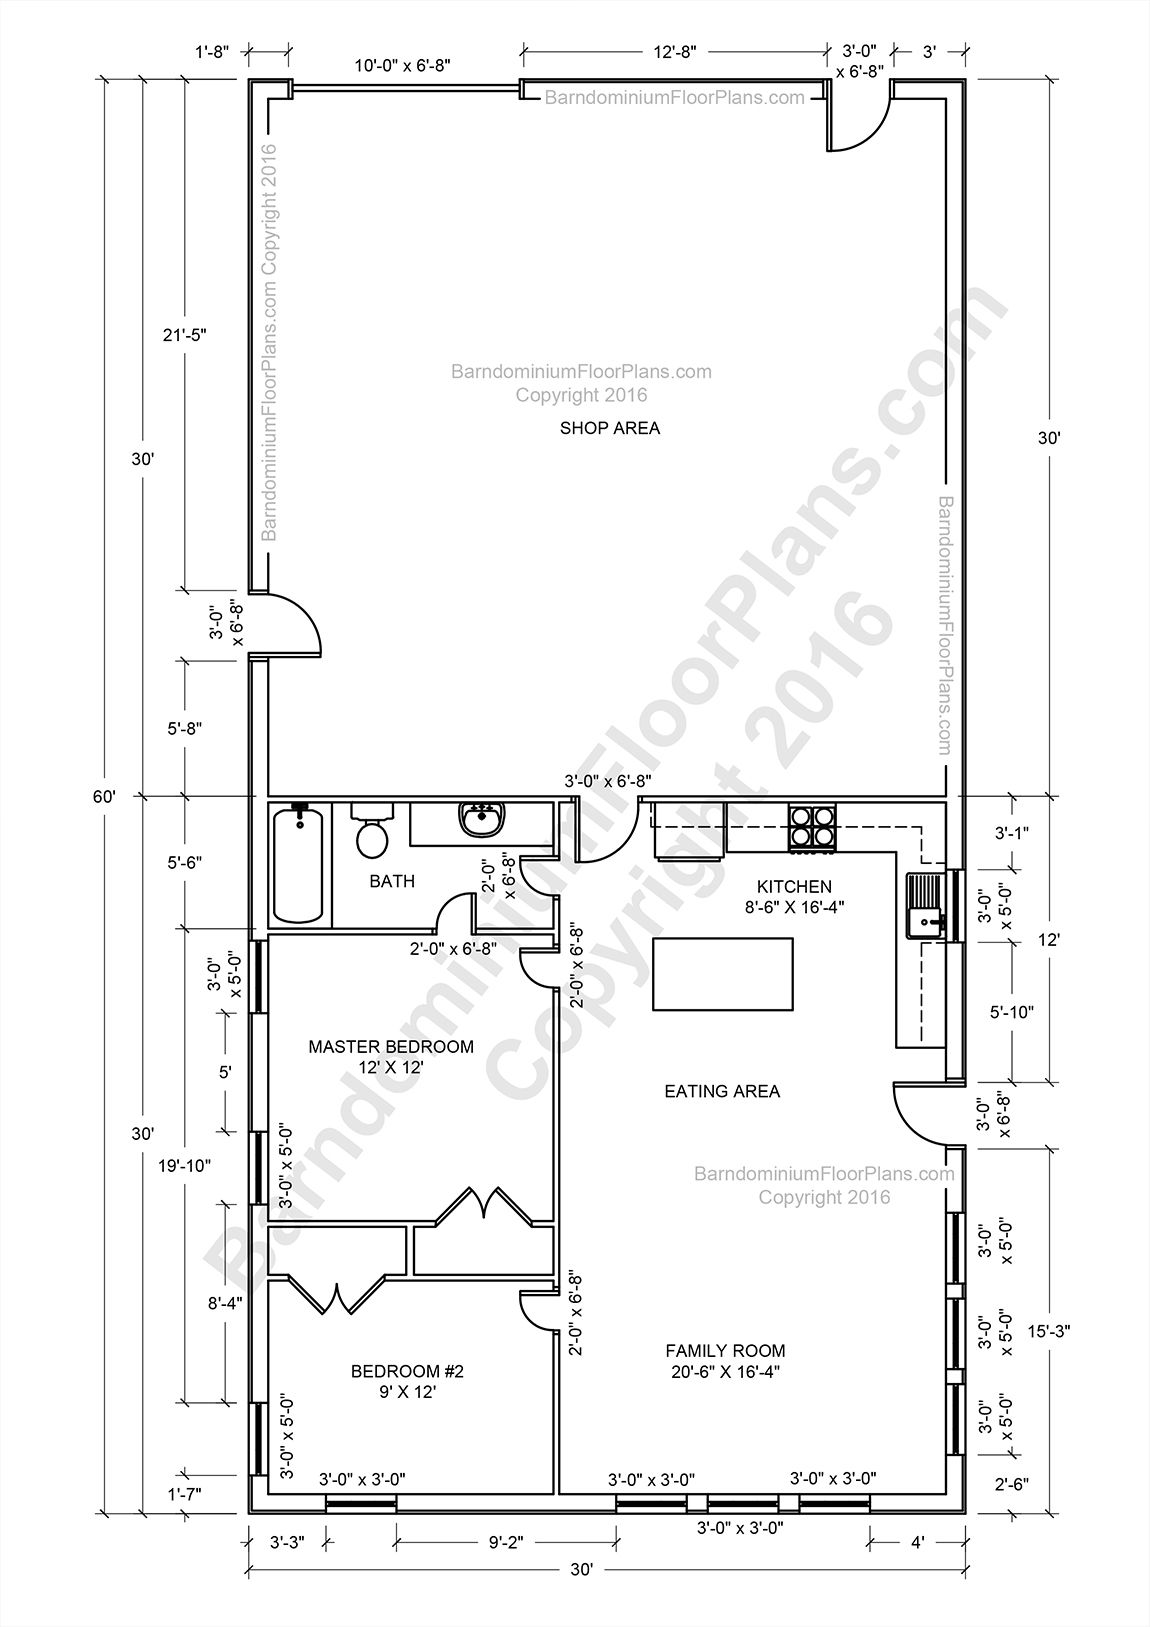 2 bedroom apt horse barn floor plans pinterest horse barns